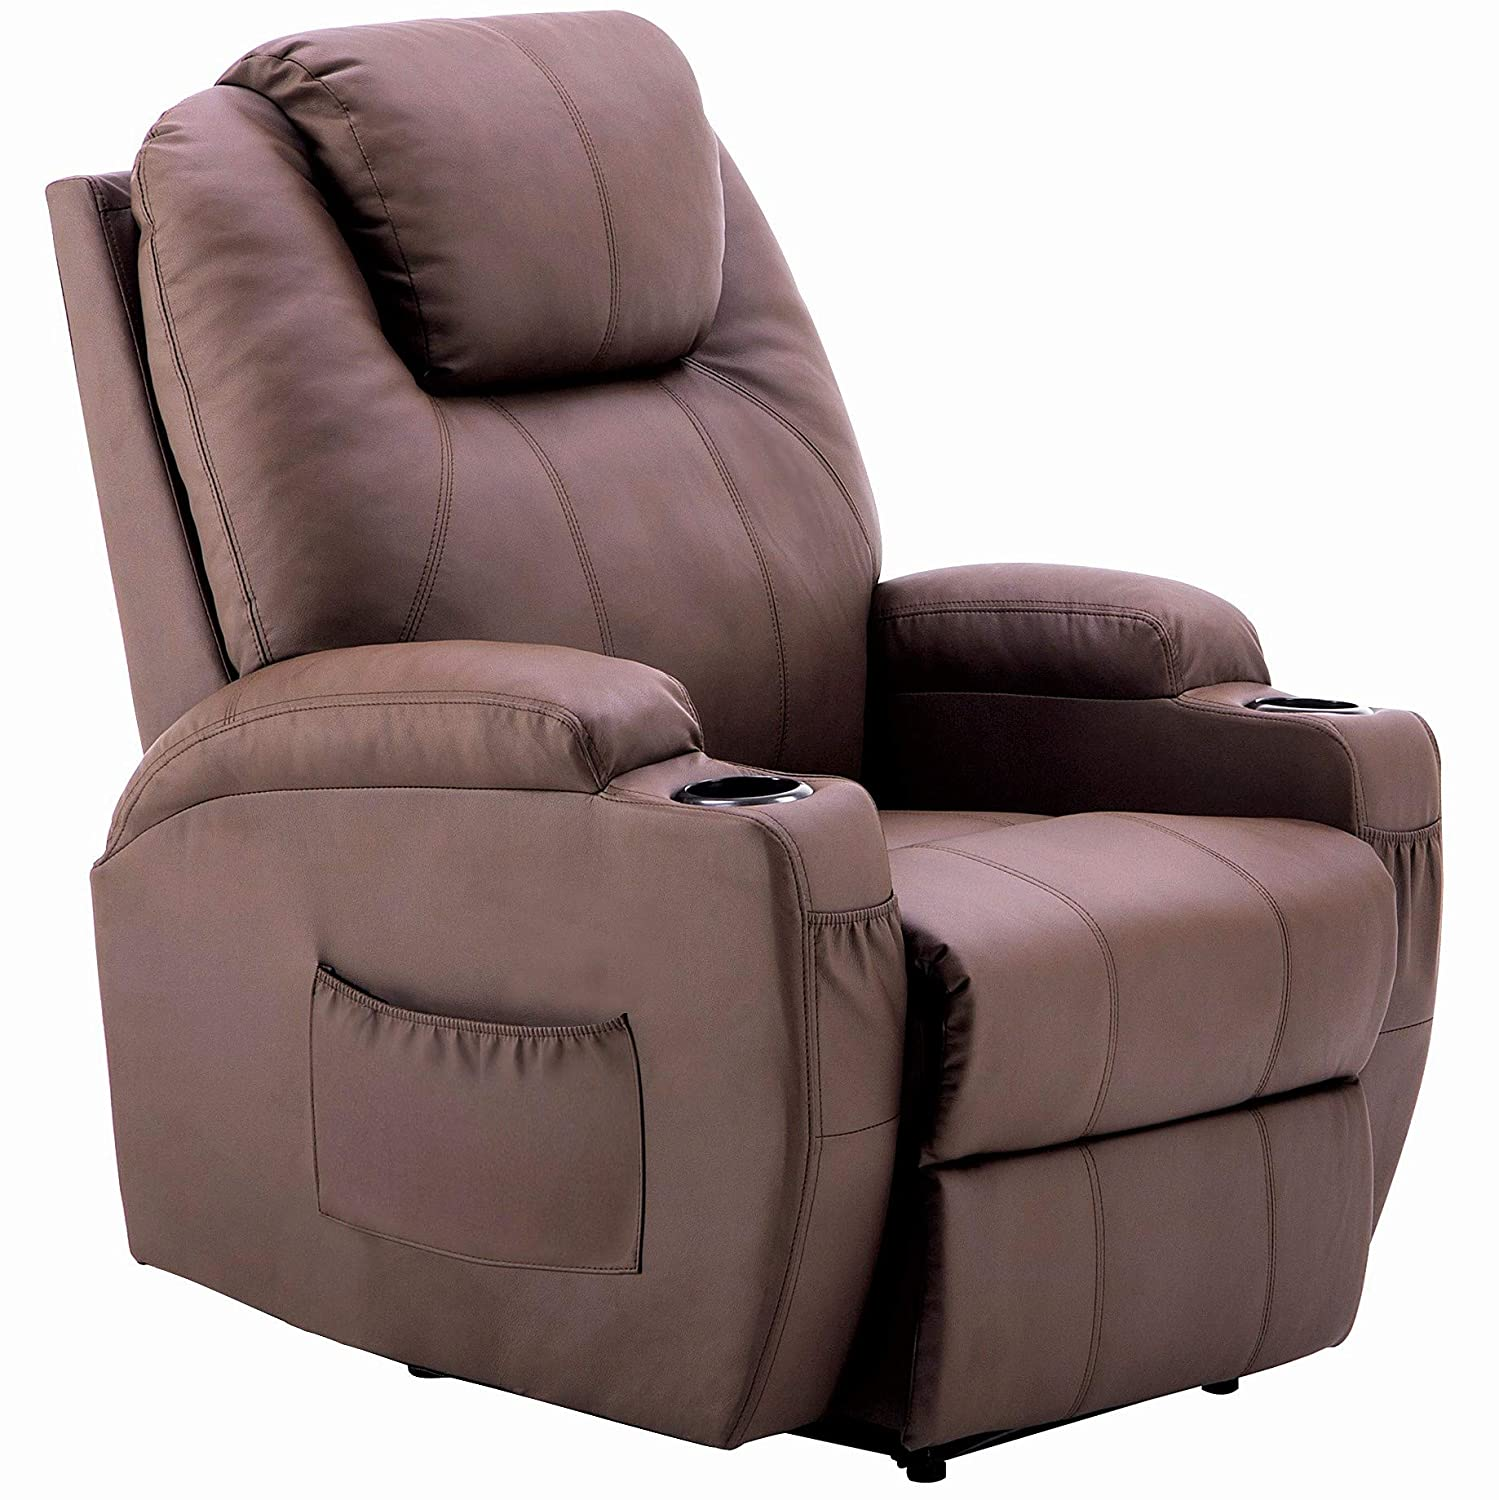 Phenomenal Mcombo Electric Power Recliner Chair Sofa With Massage And Heat For Living Room 2 Positions 2 Side Pockets And Cup Holders Faux Leather 7050 Light Ibusinesslaw Wood Chair Design Ideas Ibusinesslaworg